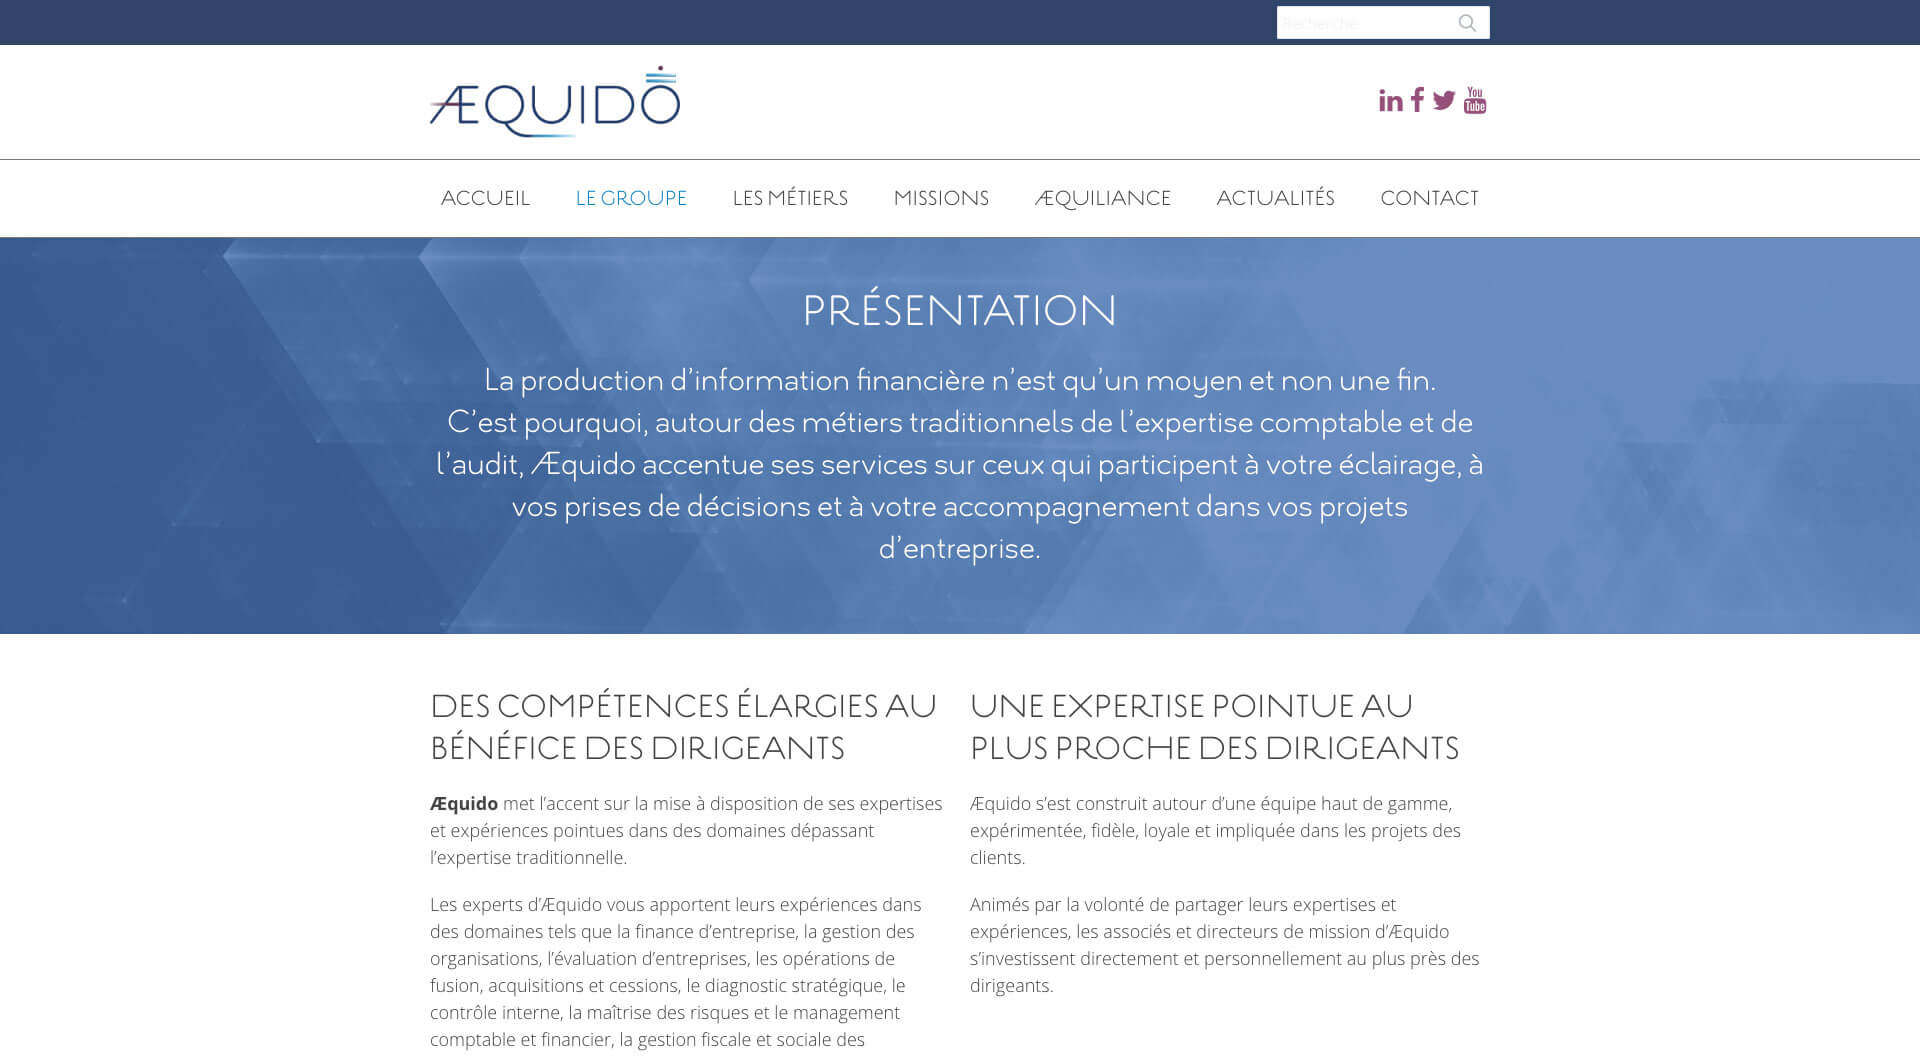 Aequido - Cabinet d'audit et d'expertise - Page Groupe